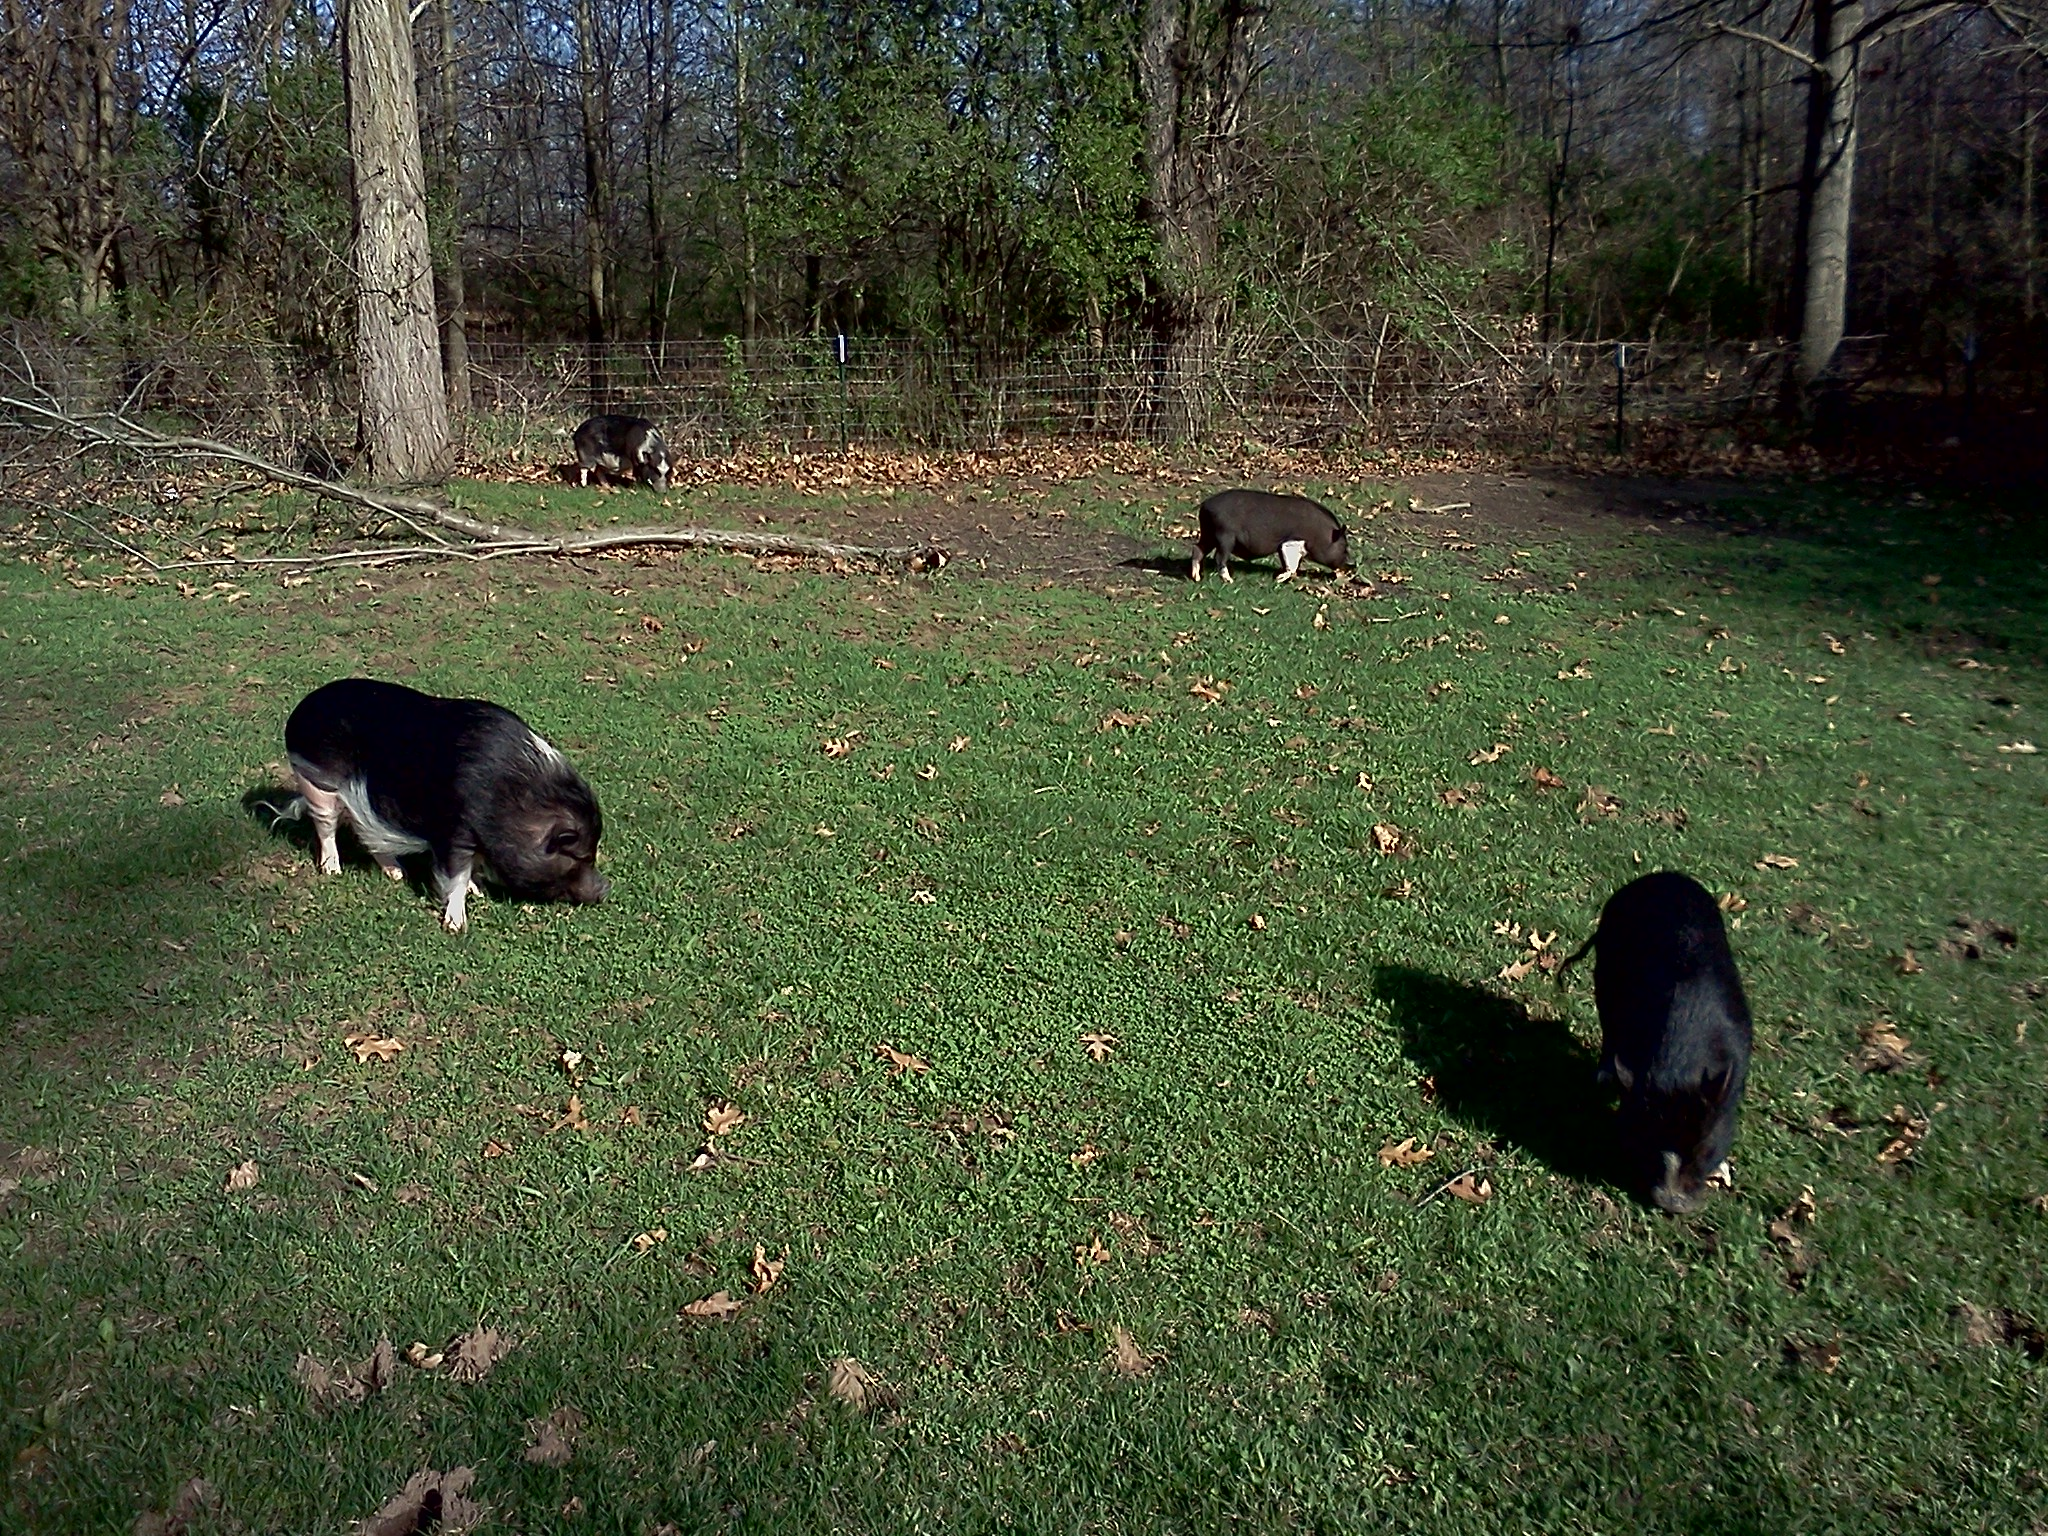 4 pigs grazing together